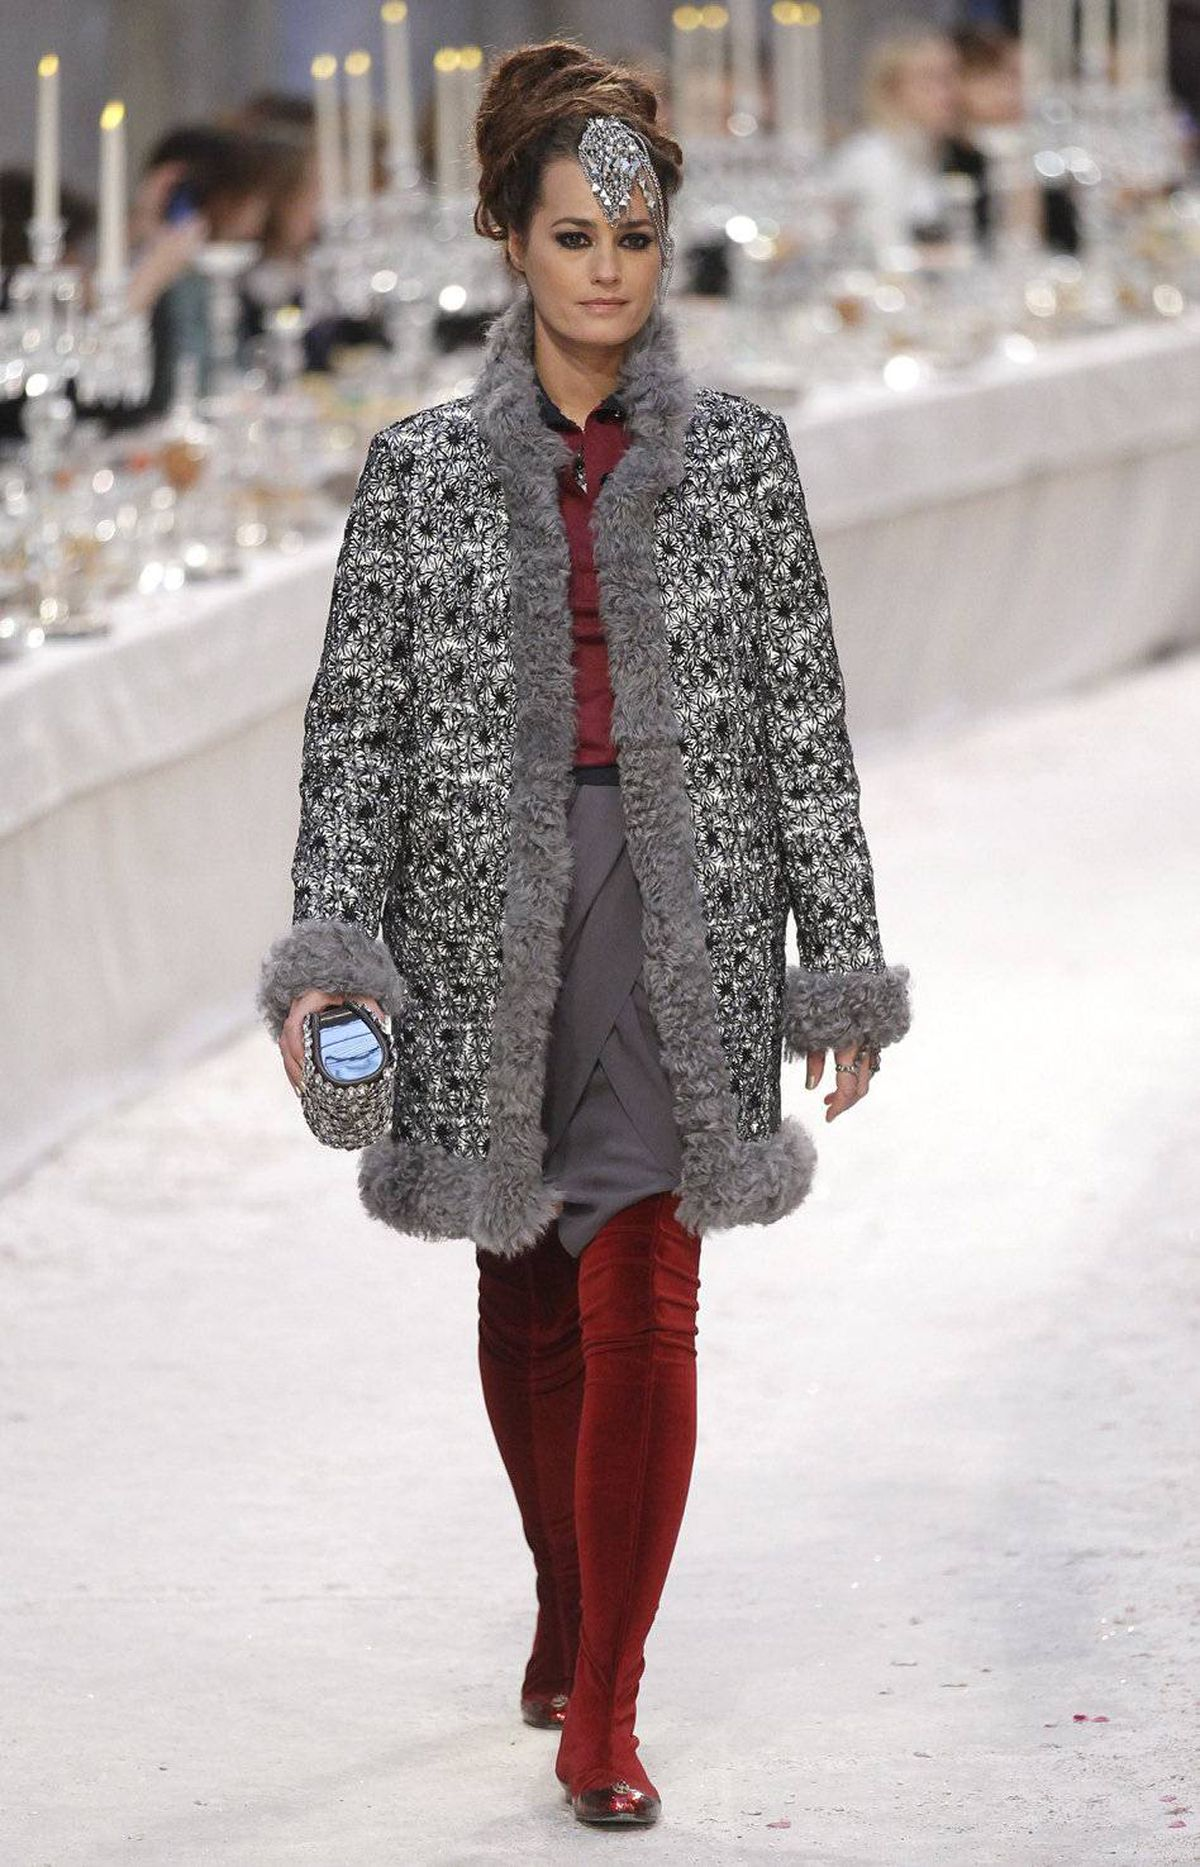 Here is British model Yasmin Le Bon who, let it be known, is 47 years old. Her coat alone screams old money-meets-new money. Meanwhile, her crimson tights seem destined for the one percent, legs edition.